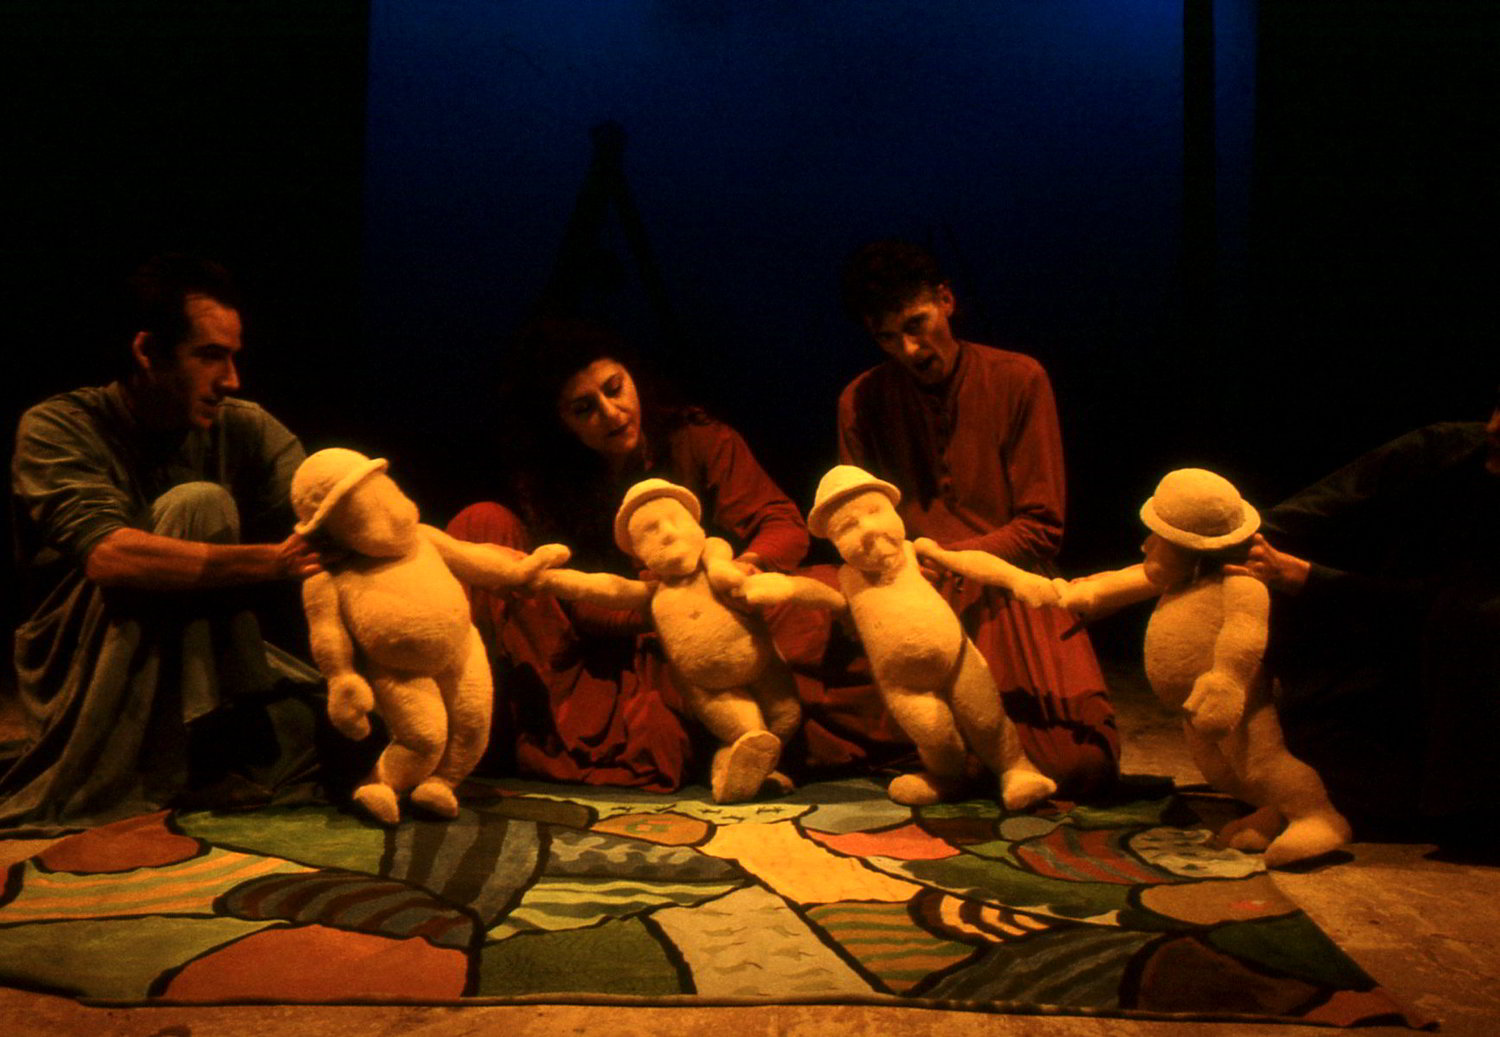 3 puppeteers with 4 foam sculpted figures wearing hats on patchwork floorcloth